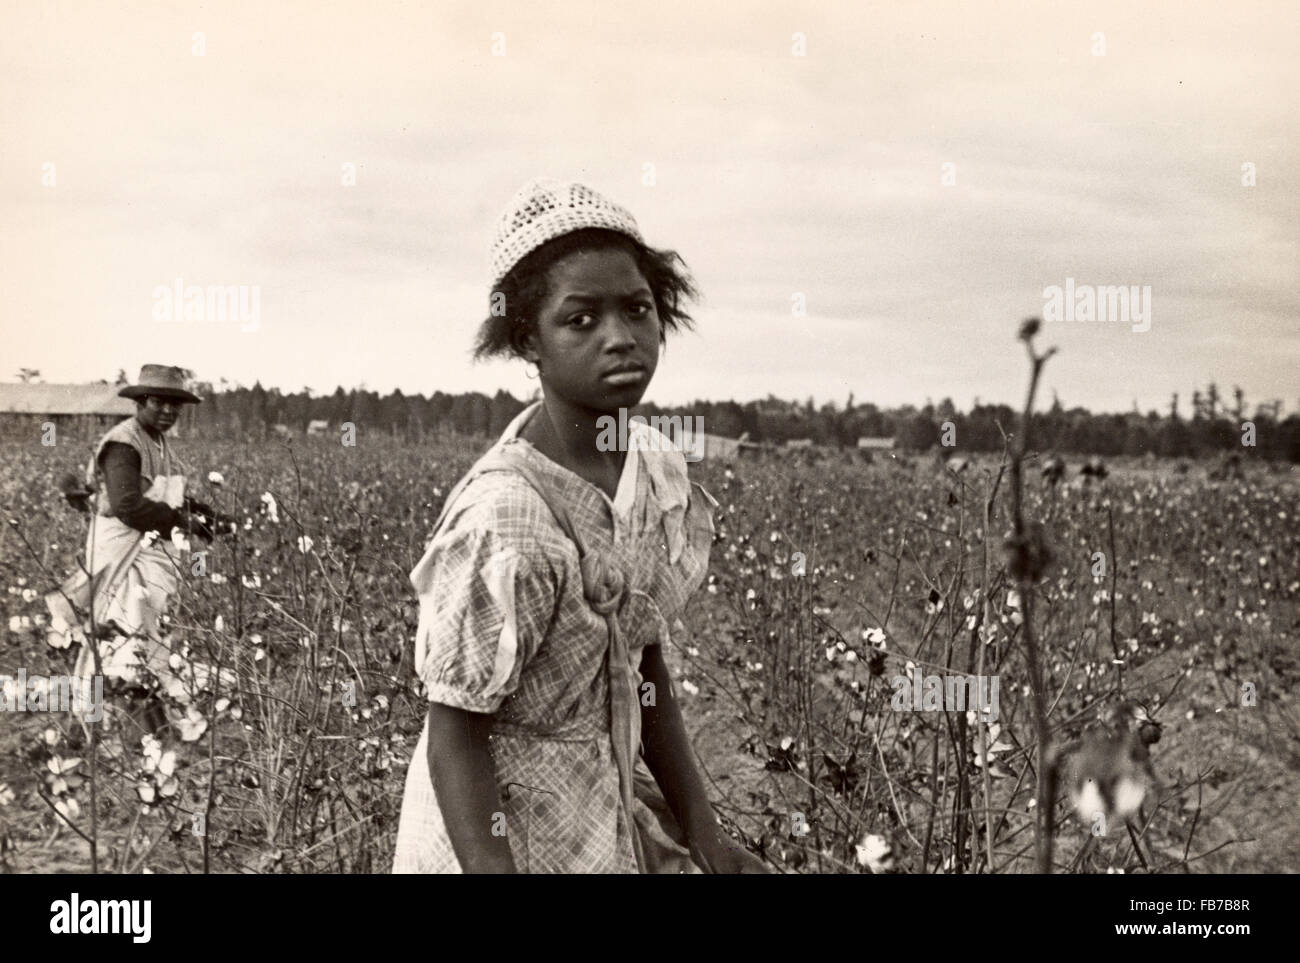 Cotton pickers, cotton picking, America, 1930's - Stock Image